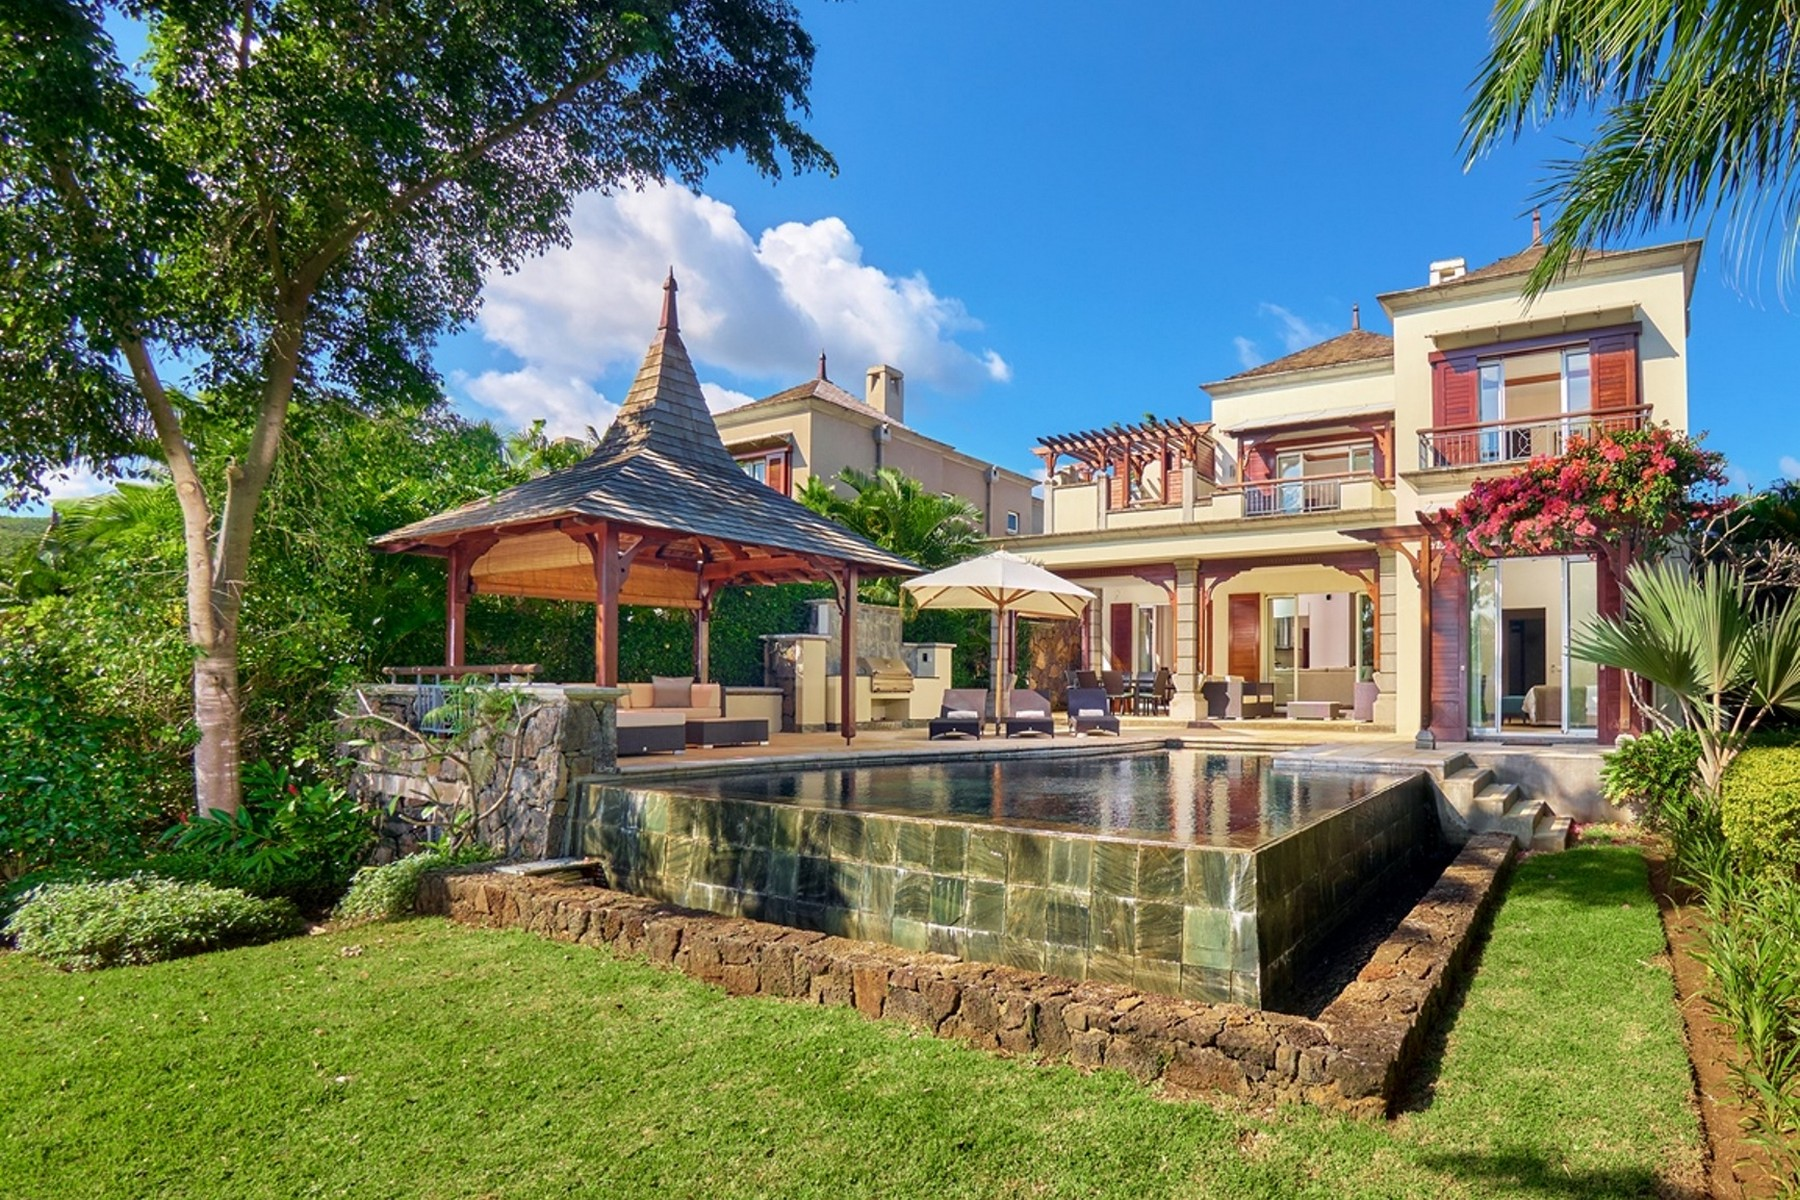 Single Family Home for Sale at 113, Villas Valriche Bel Ombre, Savanne, Mauritius